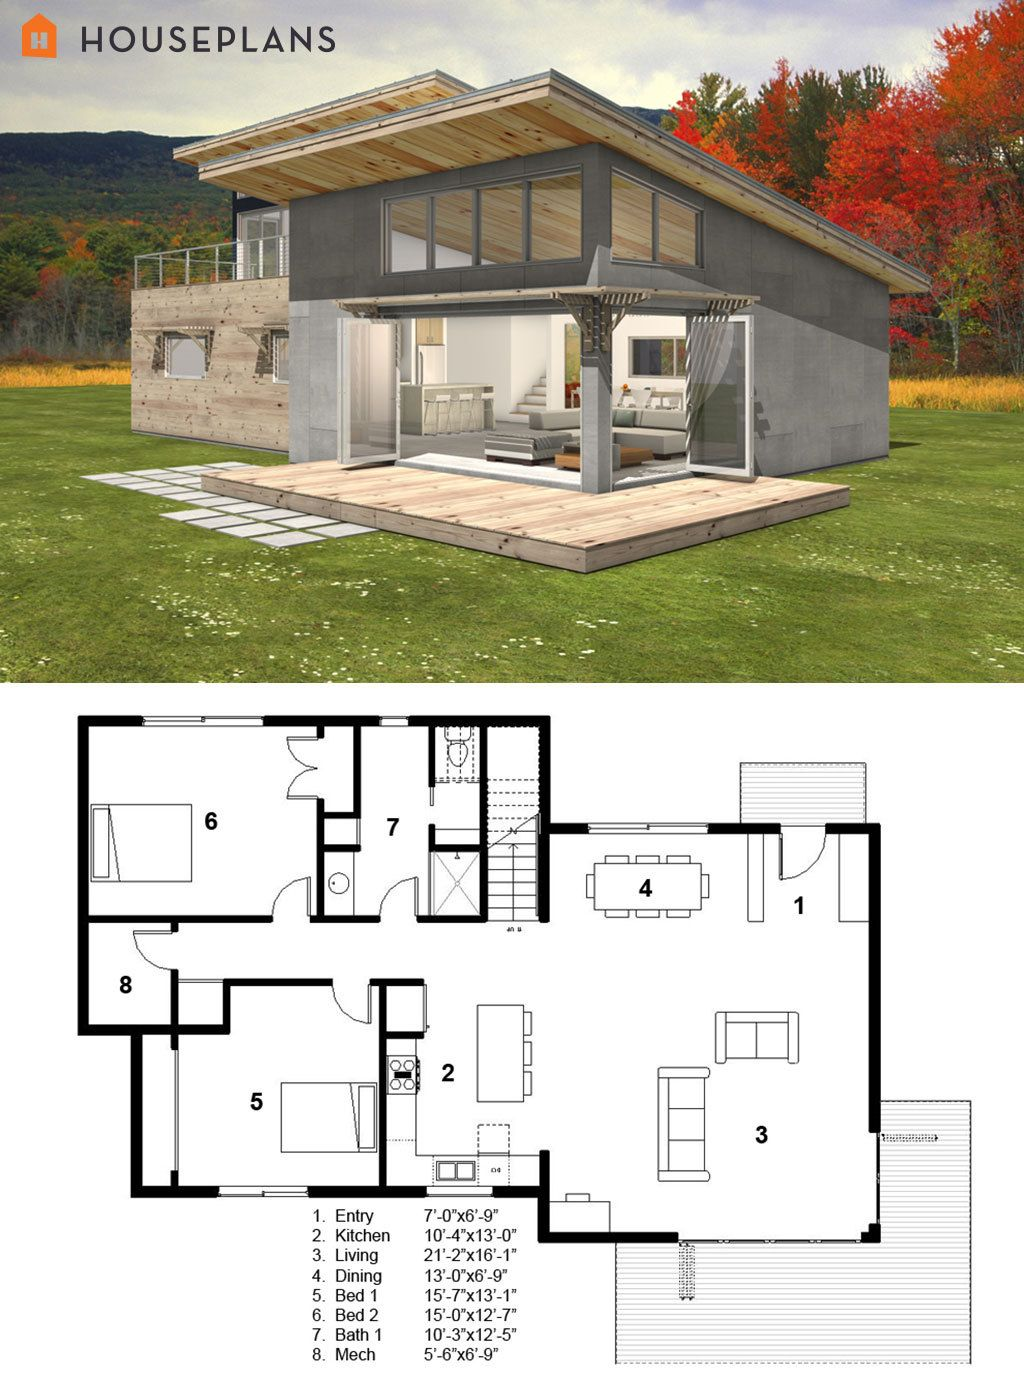 Modern style house plan 3 beds baths 2115 sq ft for Modern single floor house designs